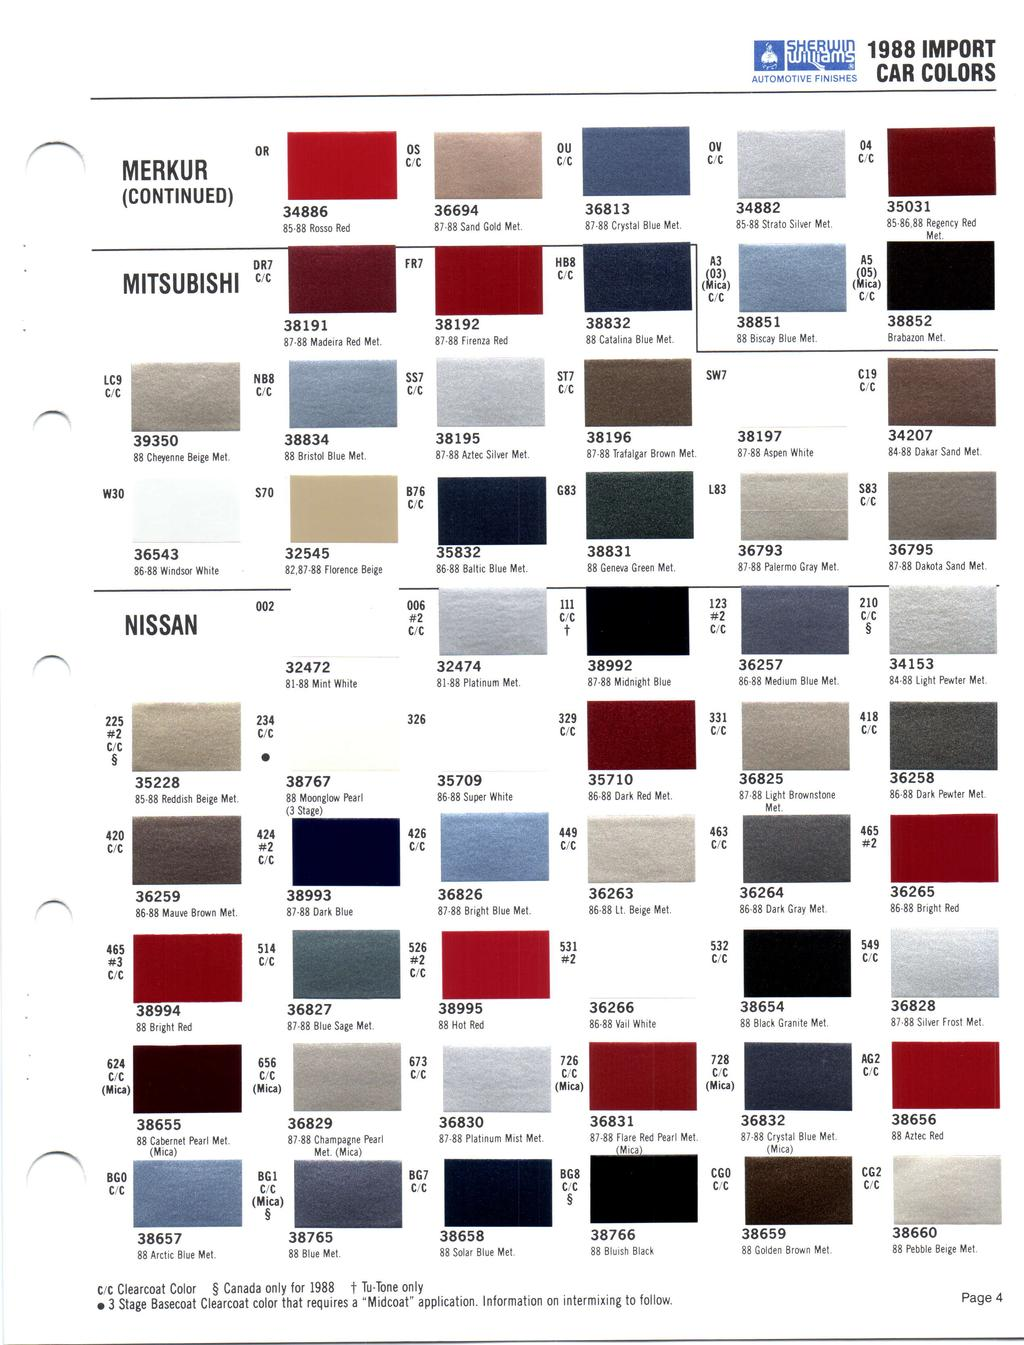 Import Car Colors Imp Manufacturer Page Nissan Peugeot 8688samuraiwiringdiagrampng Ena Automotive Finishes Merkur Continued Or Os Ou Ov 04 34886